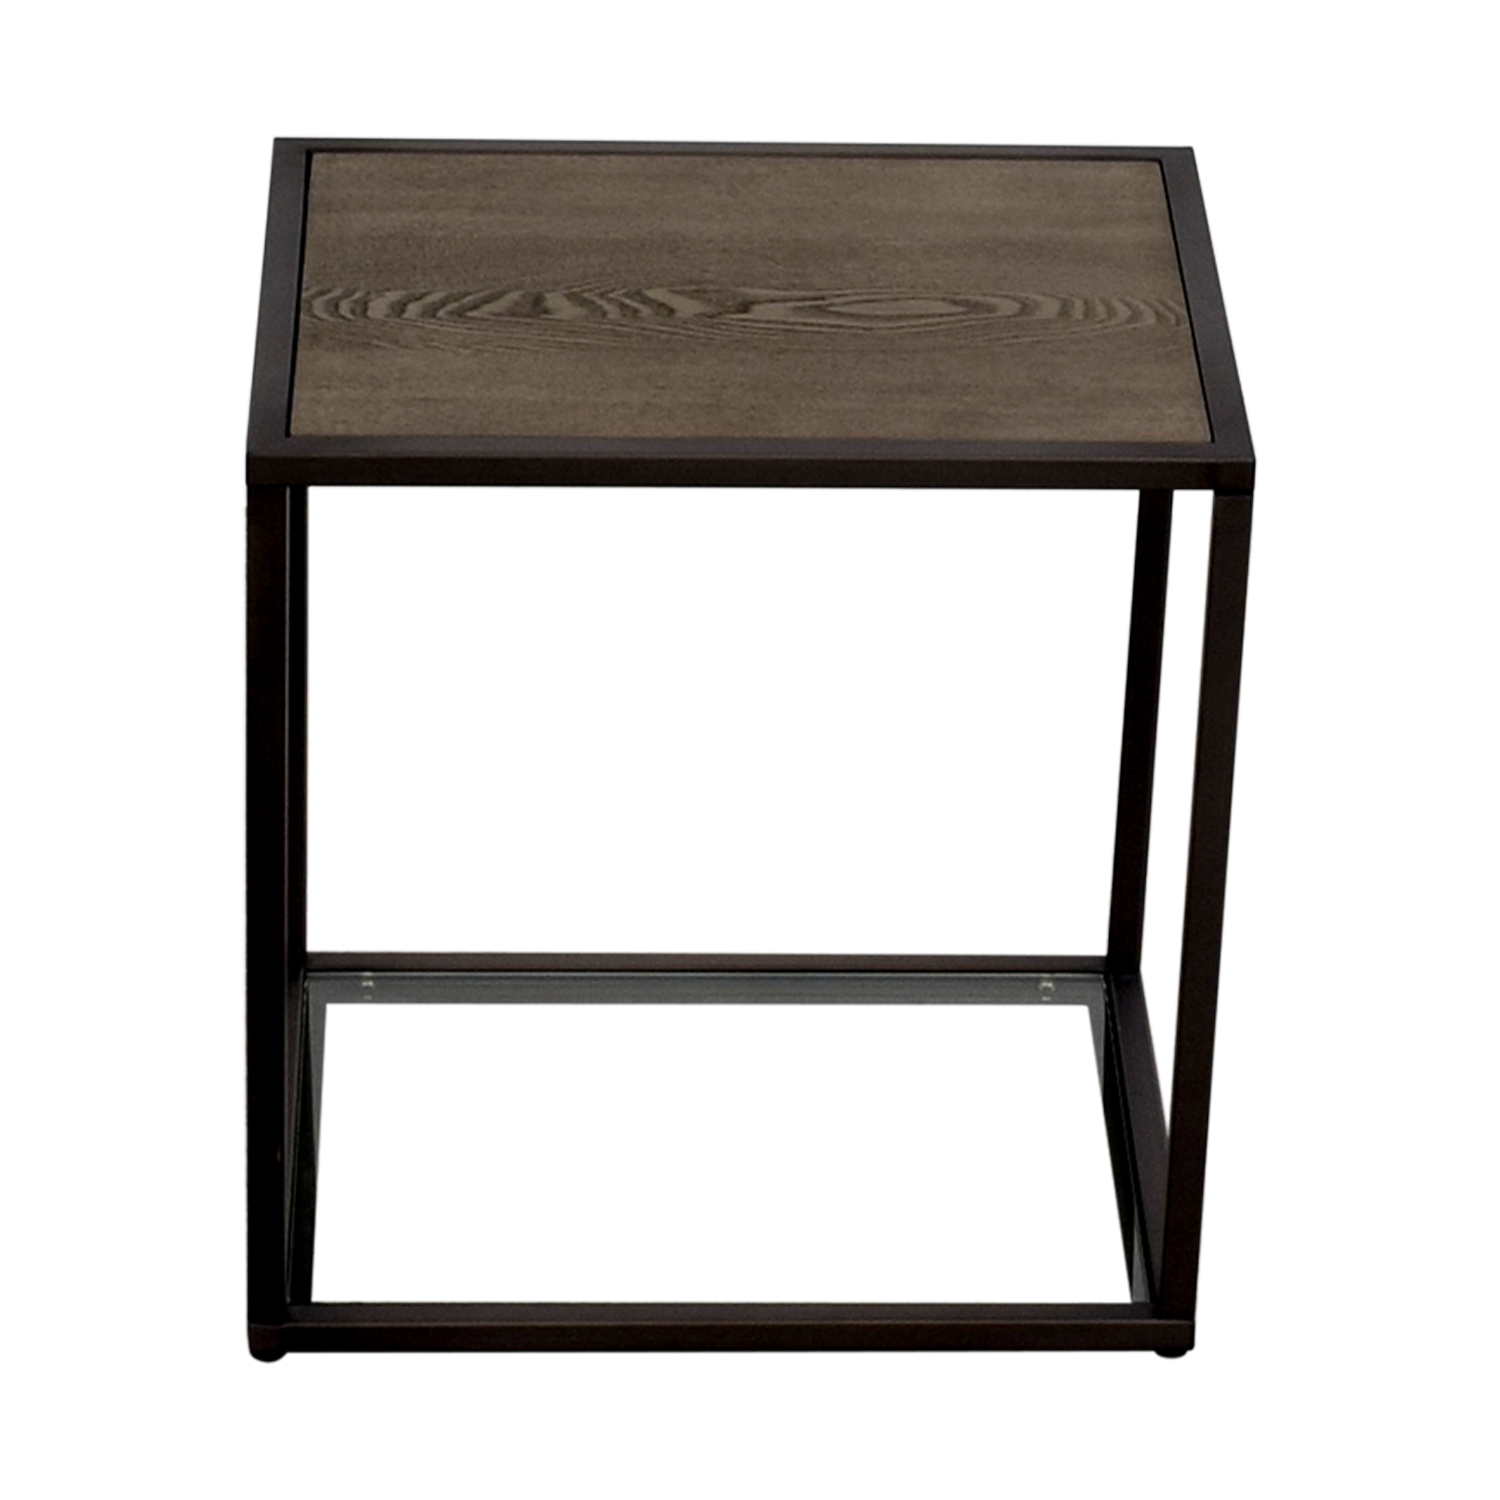 Crate & Barrel Crate & Barrel Switch Side Table dimensions